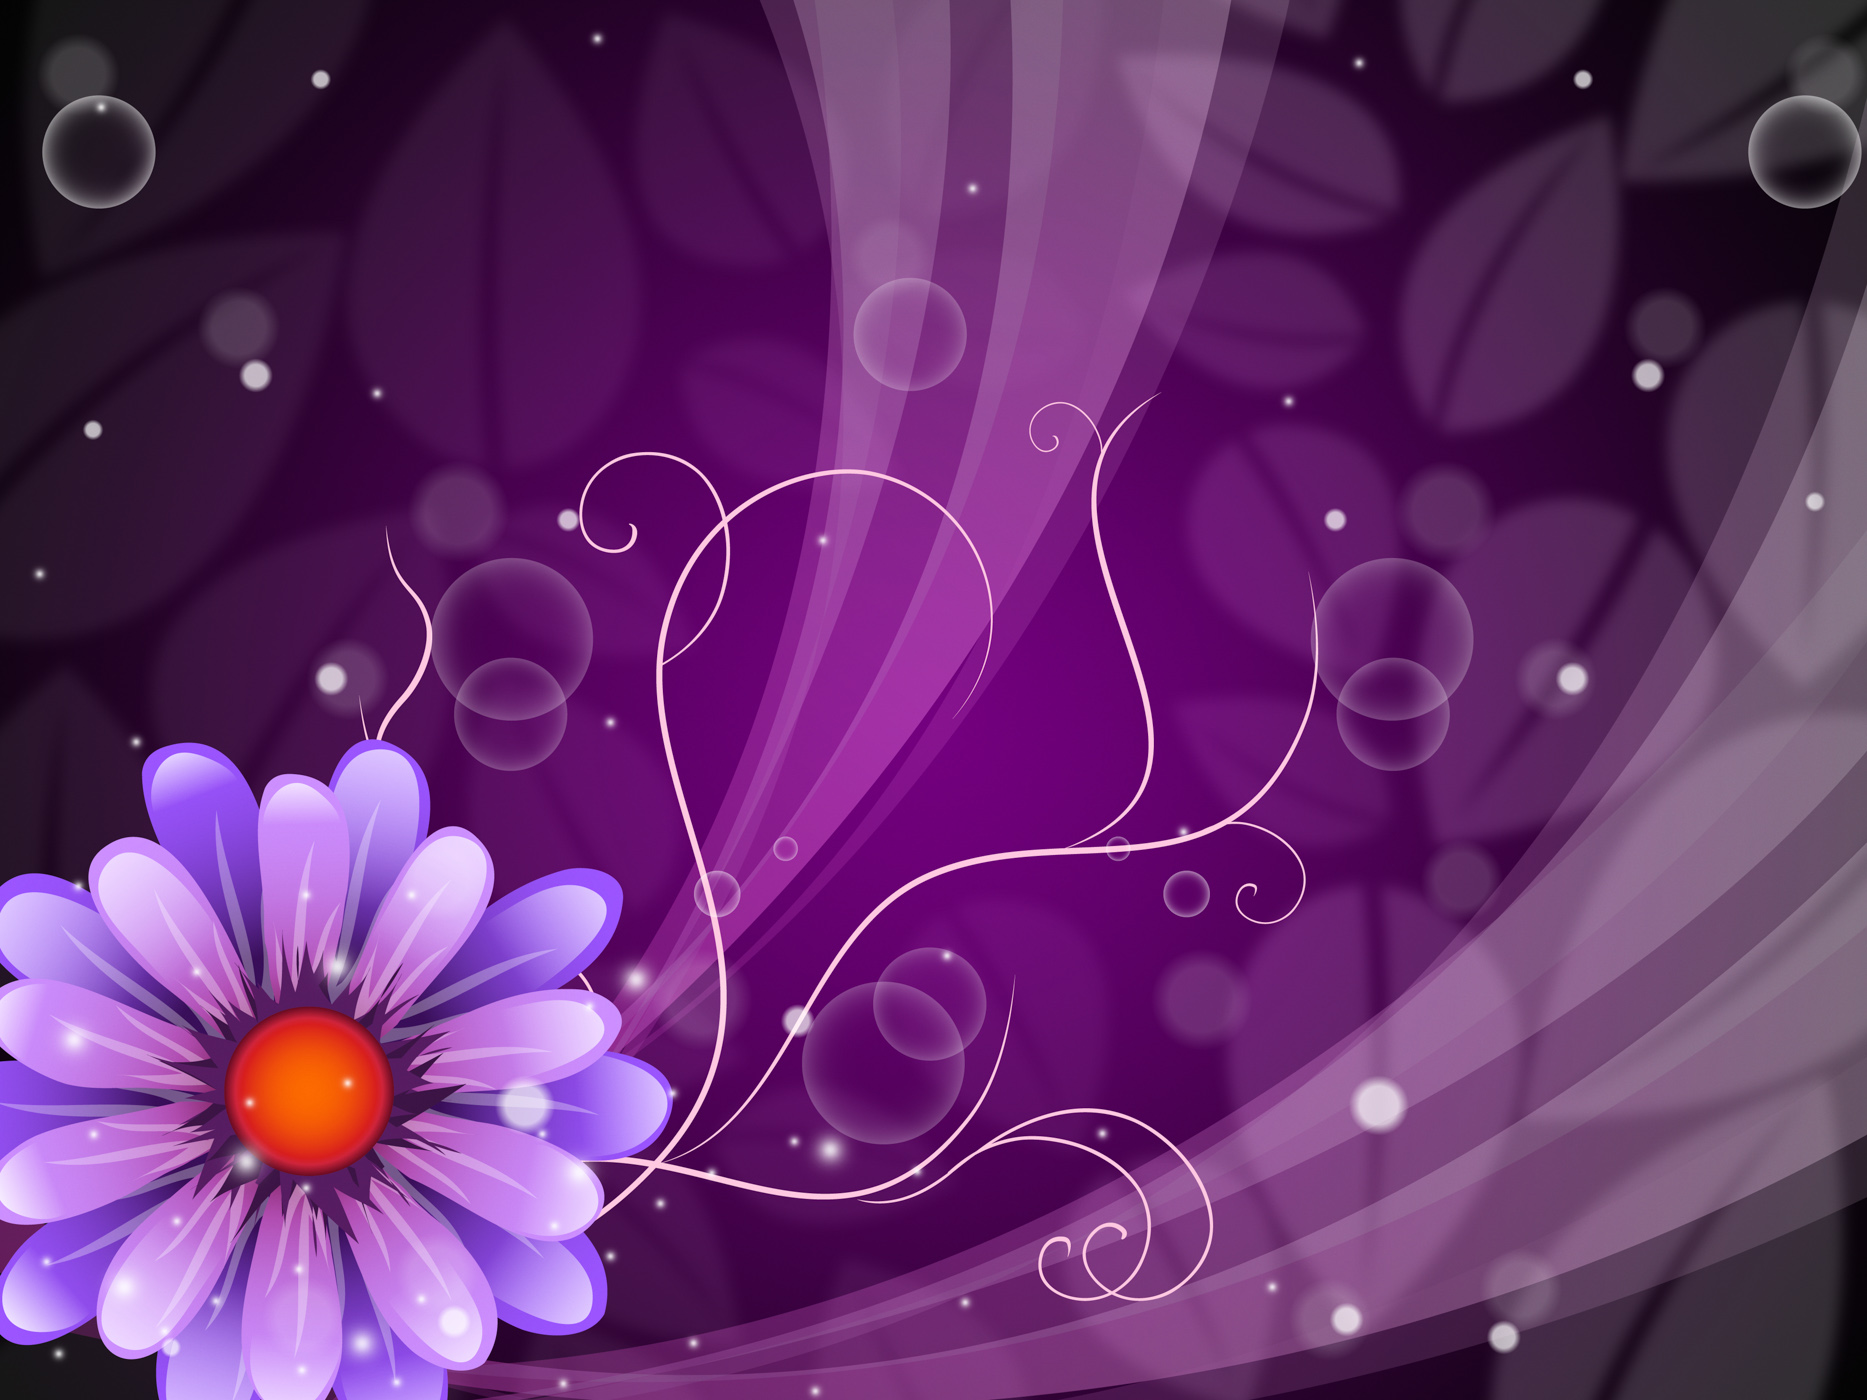 Flower Background Shows Petals Blooming And Beauty, Admire, Shoot, Planting, Petals, HQ Photo